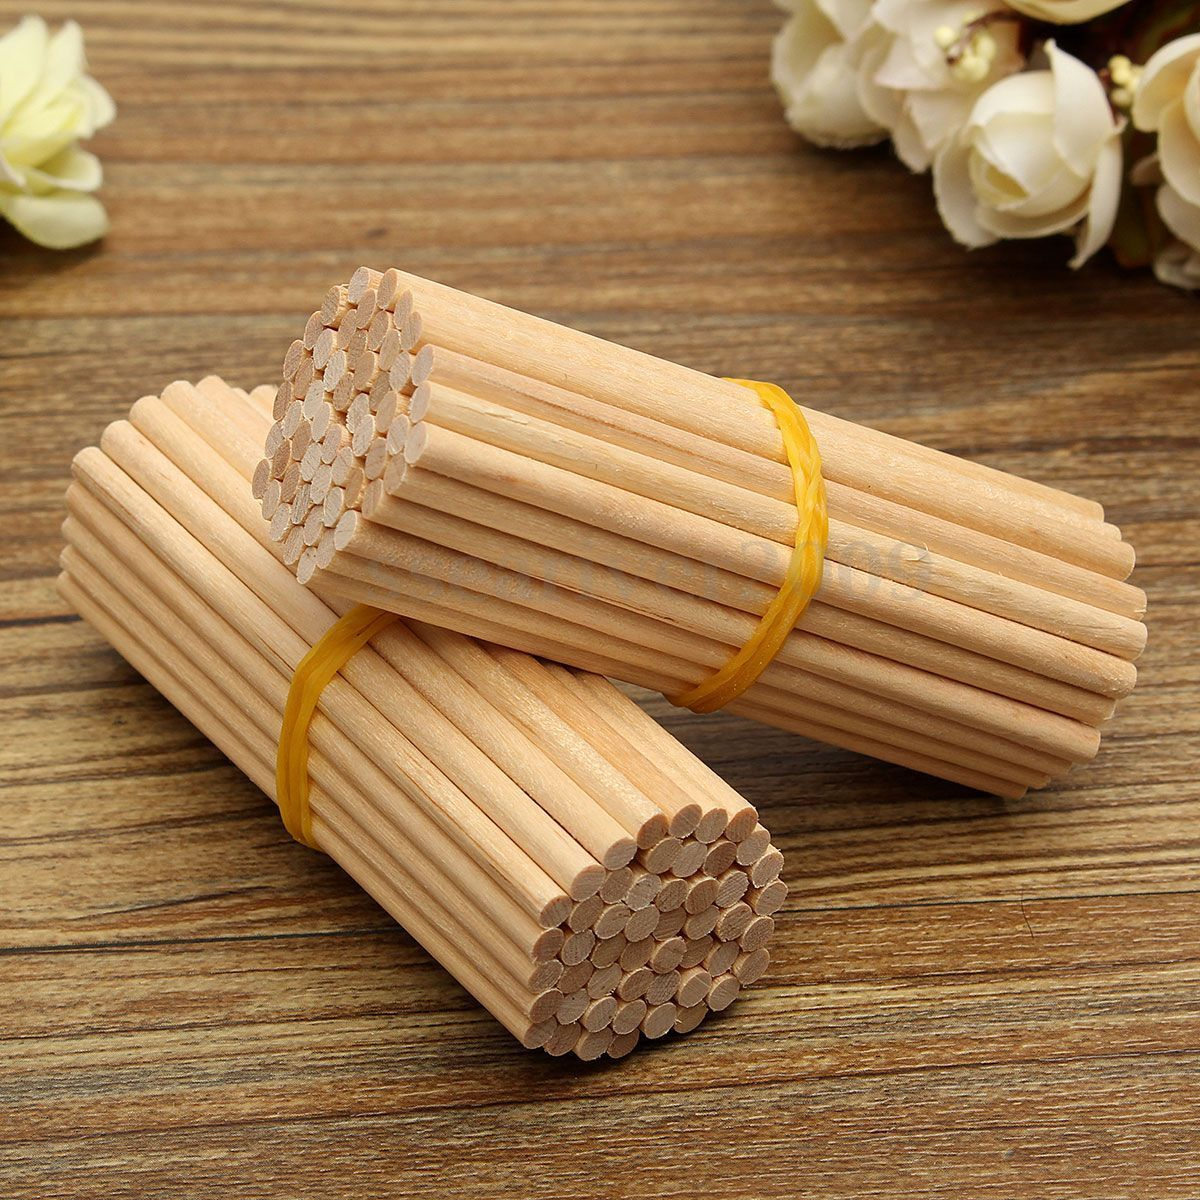 100Pcs 100mm X 3mm Round Wooden Lollipop Lolly Sticks Cake Dowel For DIY Food Crafts Gift Art